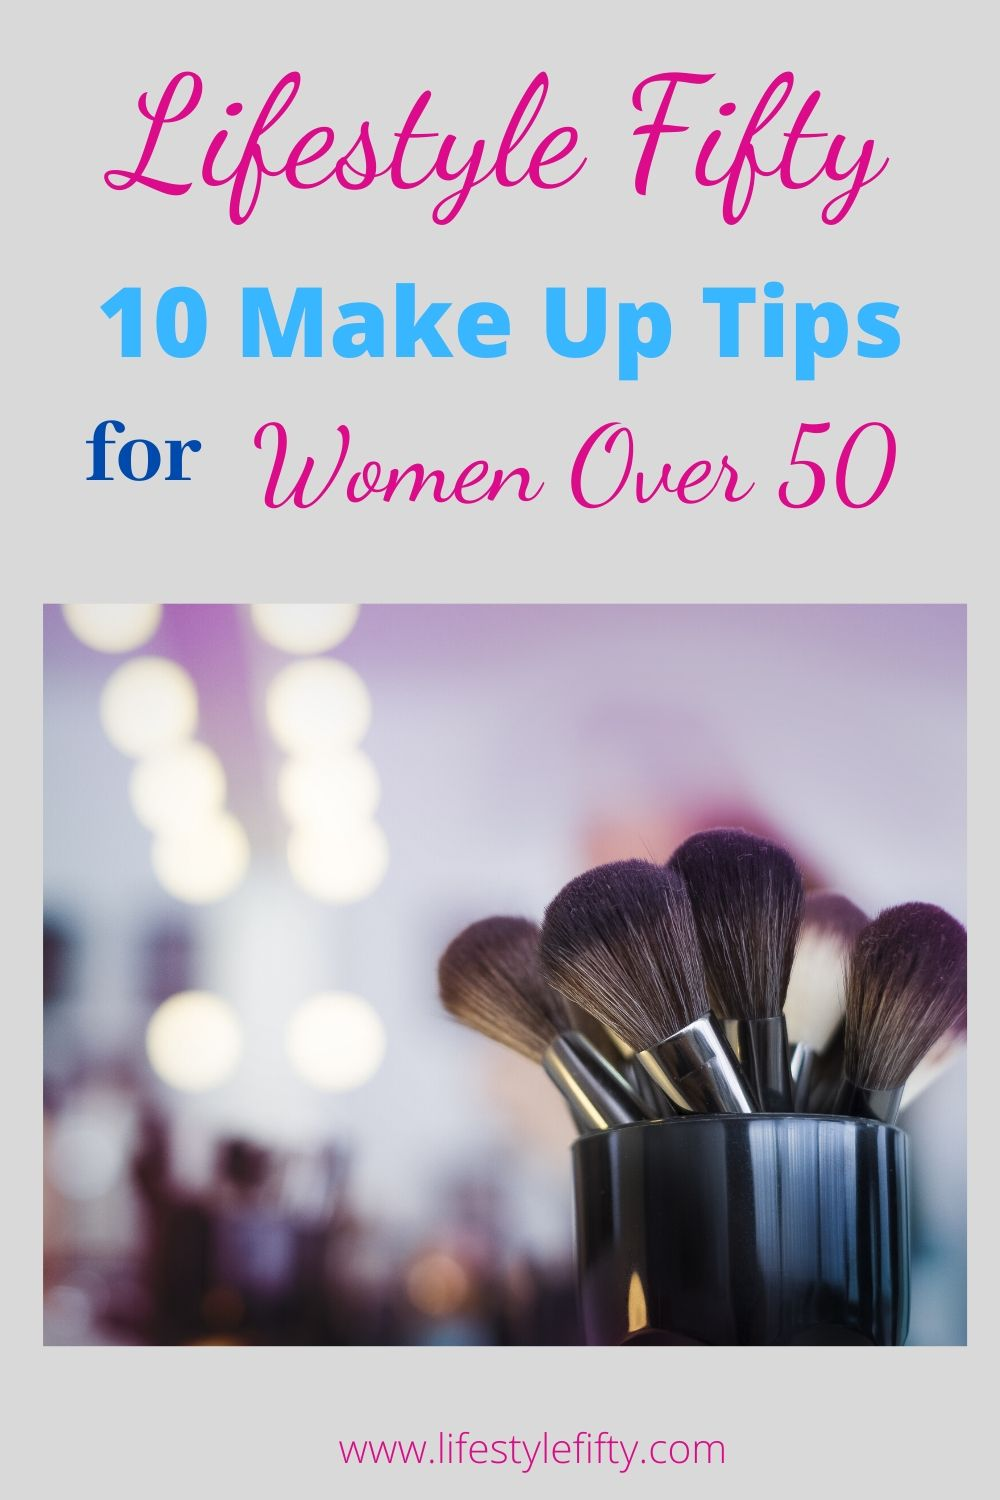 10 Make up tips, text overlay